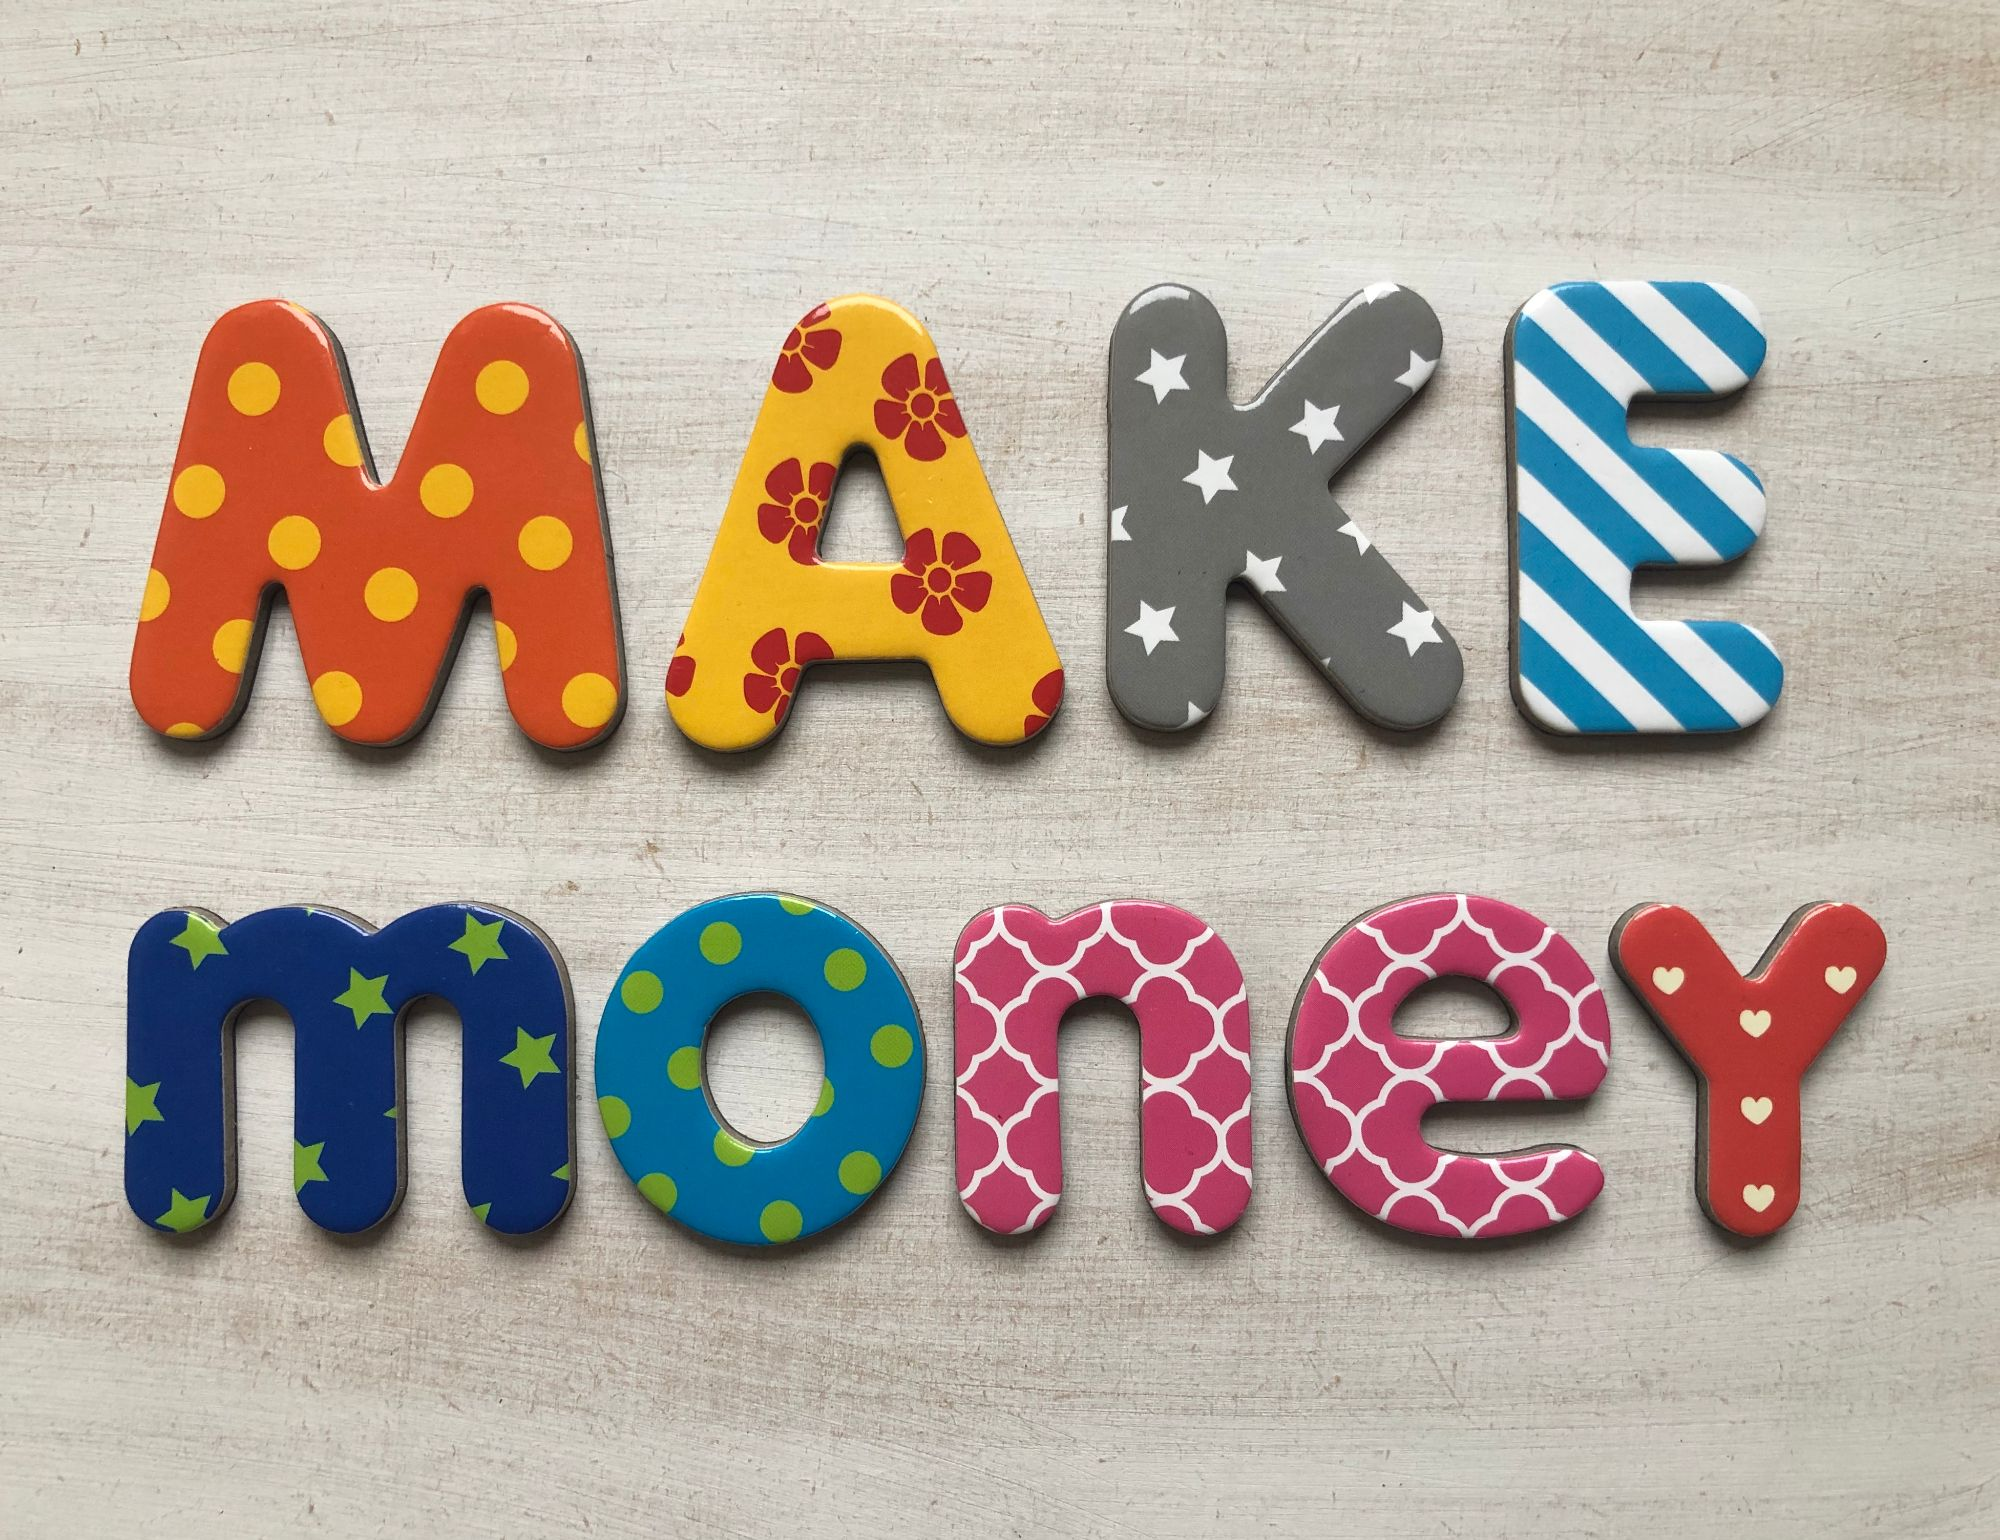 Free stock images for money bloggers blog -alphabet lettering letters white background colourful says 'make money'